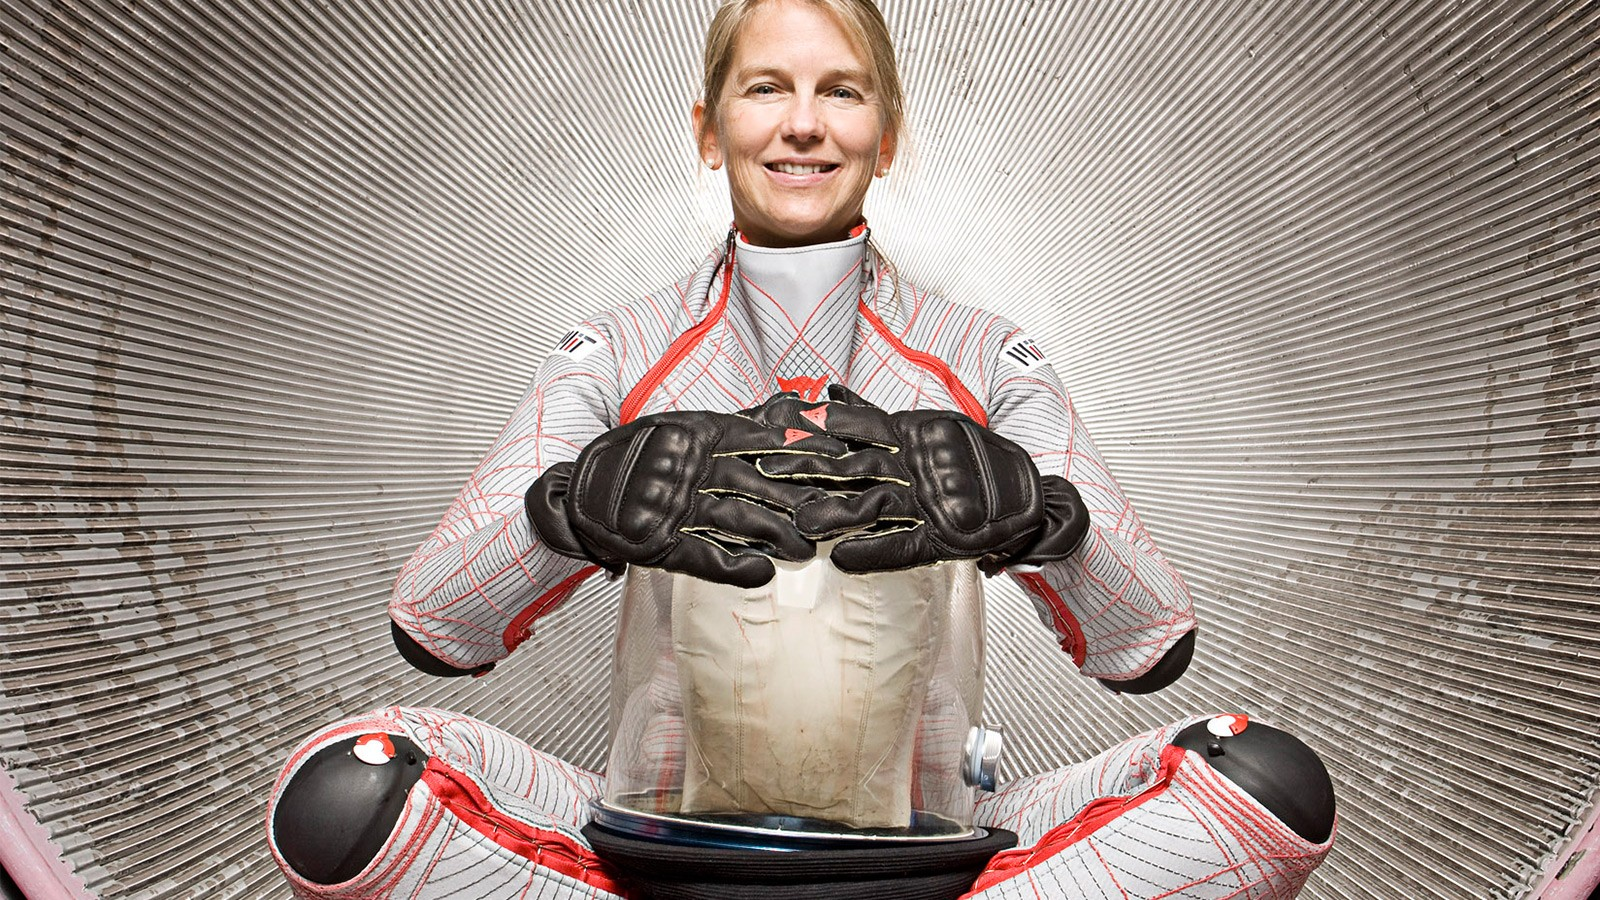 Dainese Creates Two Space Suits For Mars Missions Autoevolution